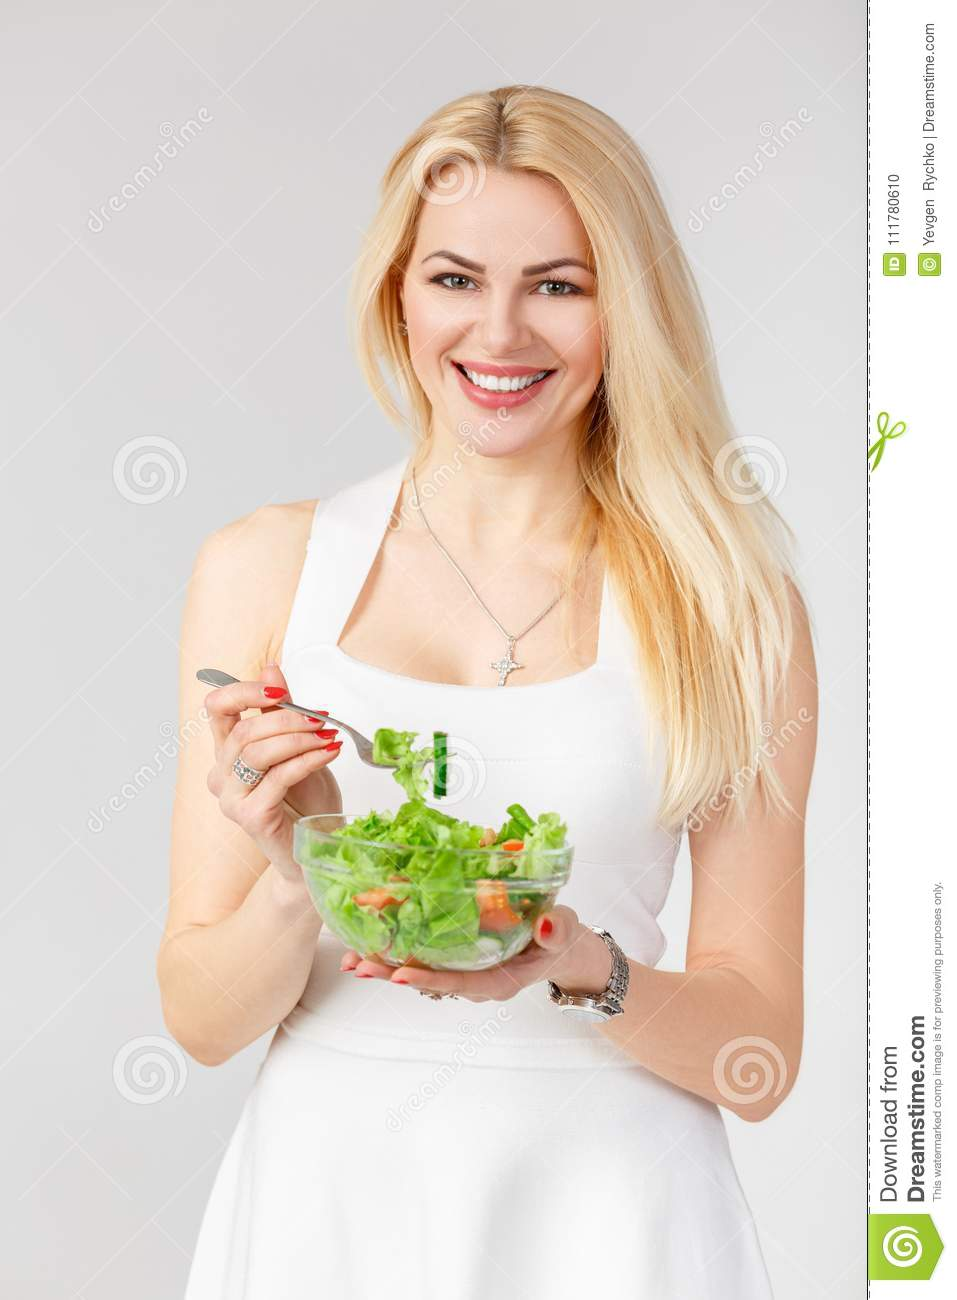 Woman in white dress with fresh salad